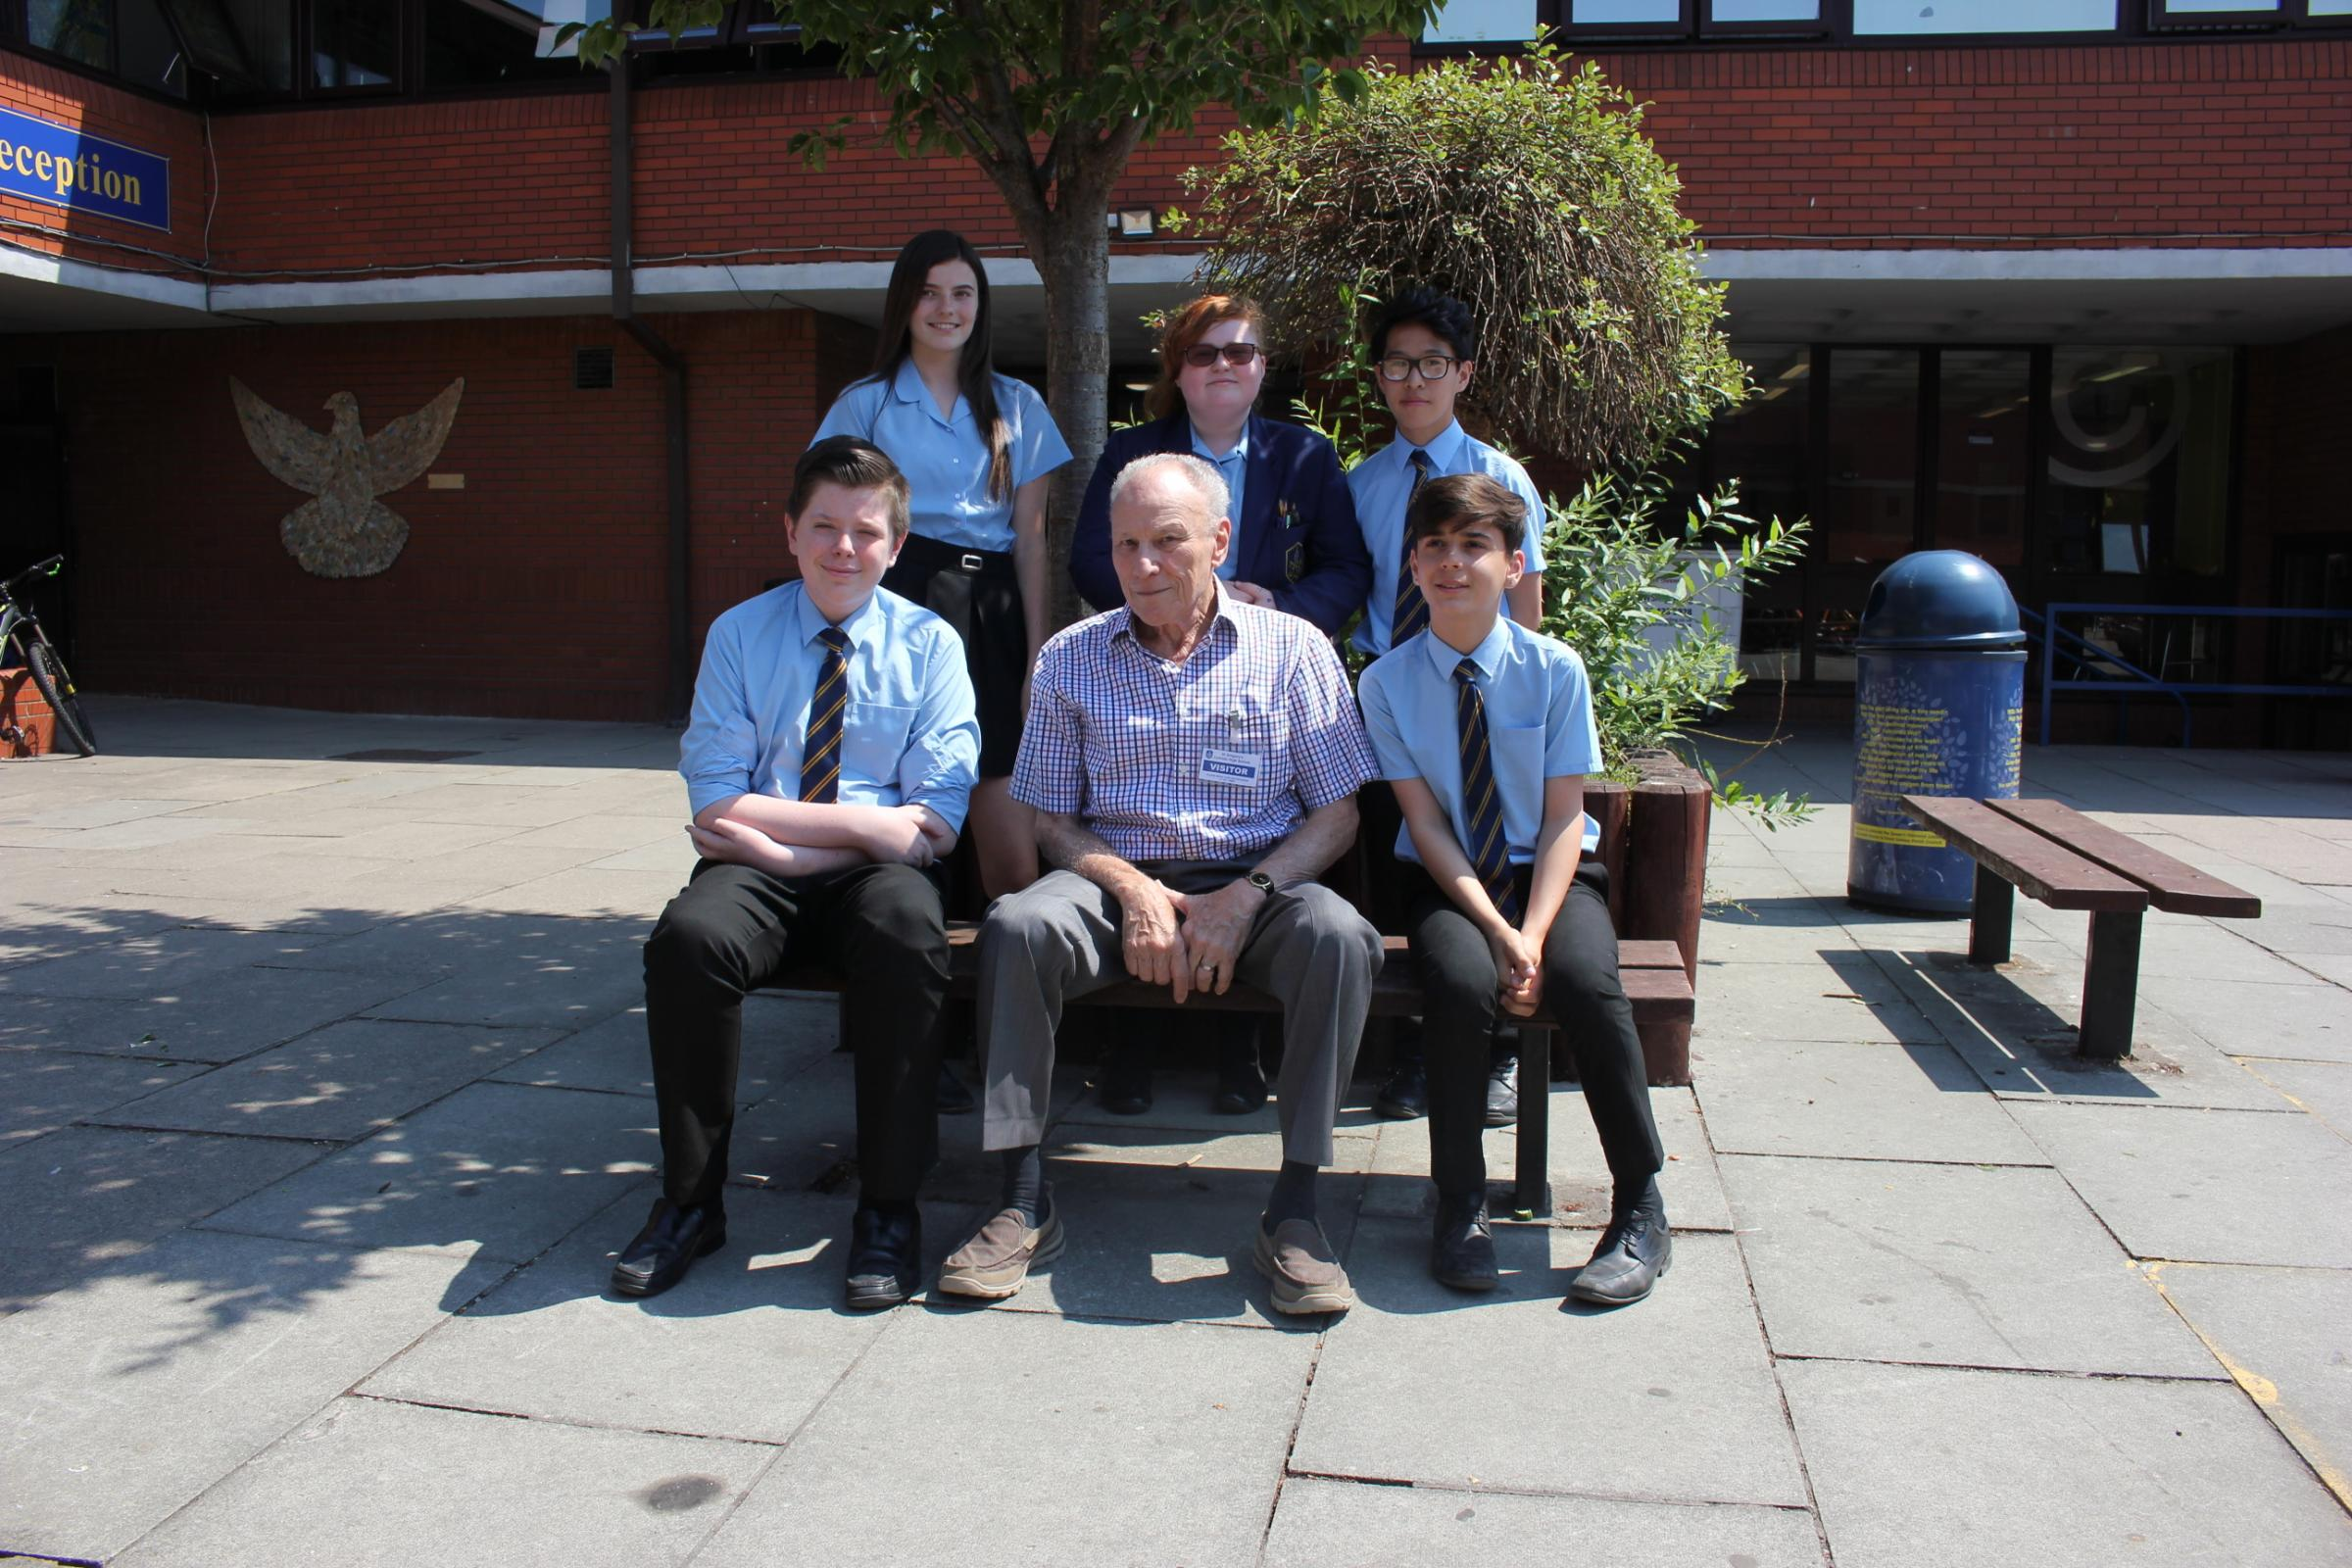 Holocaust survivor visits St Gregory's High School to share his  heart-wrenching journey